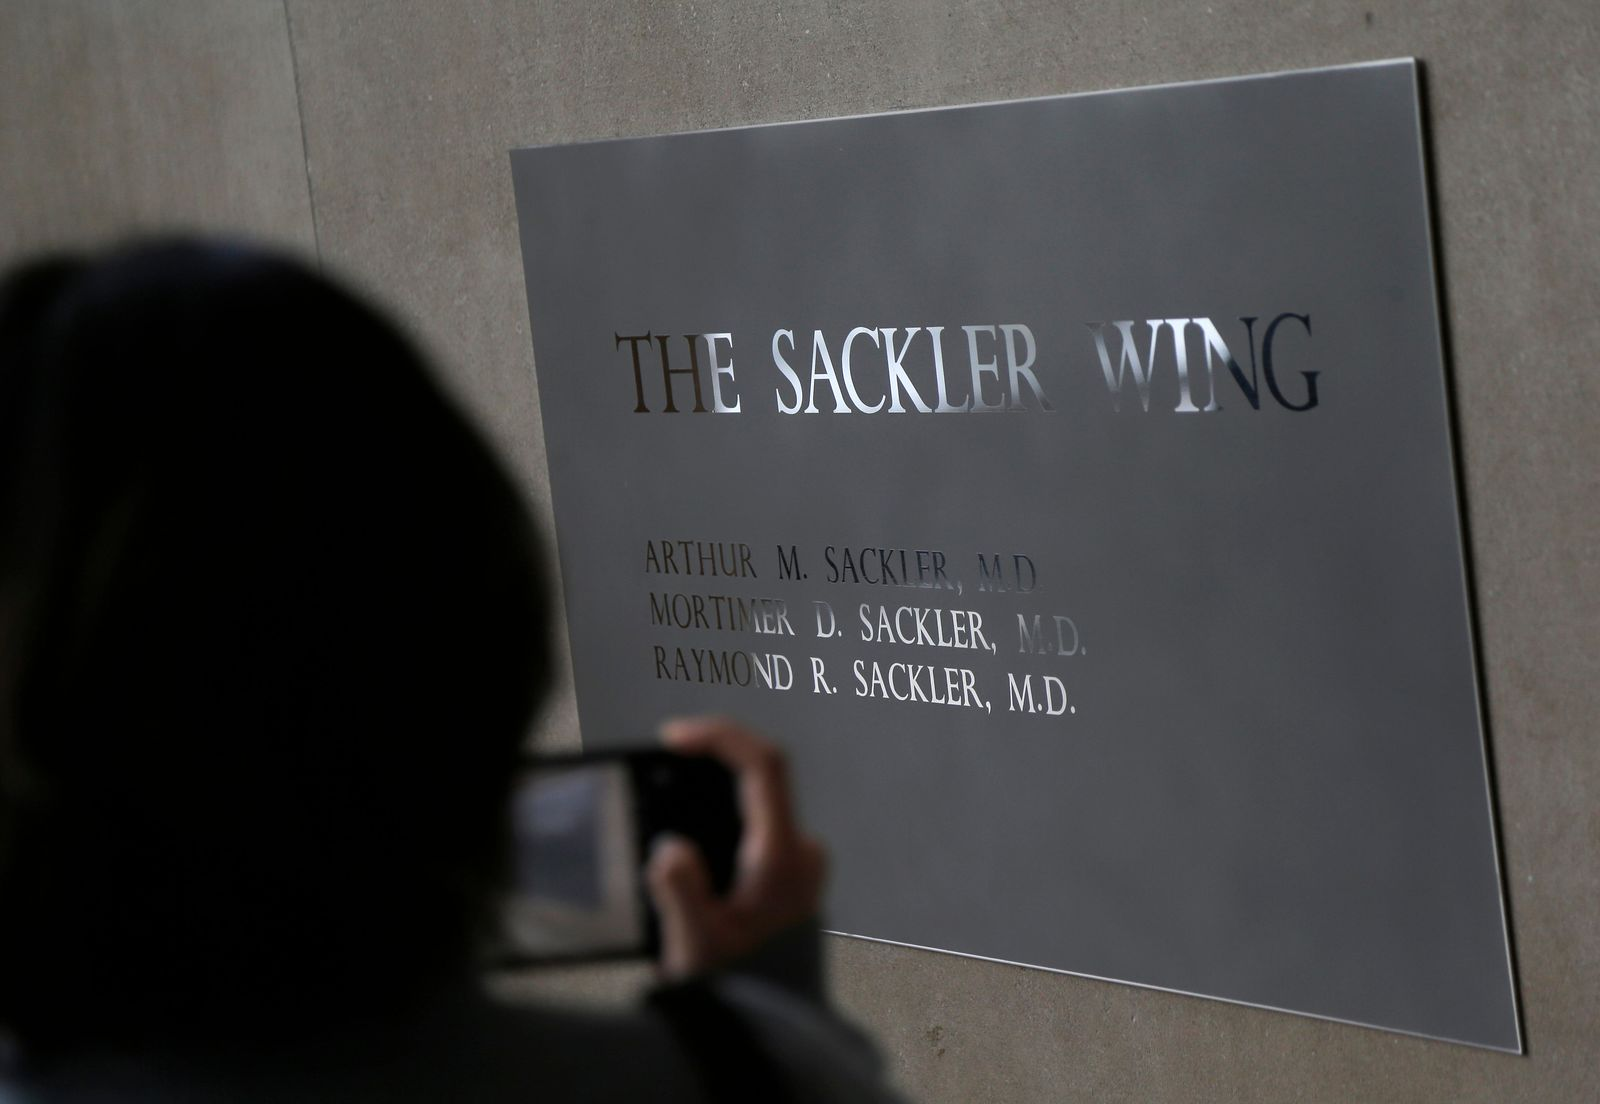 A sign with some names of the Sackler family is displayed at the Metropolitan Museum of Art in New York, Thursday, Jan. 17, 2019. (AP Photo/Seth Wenig)